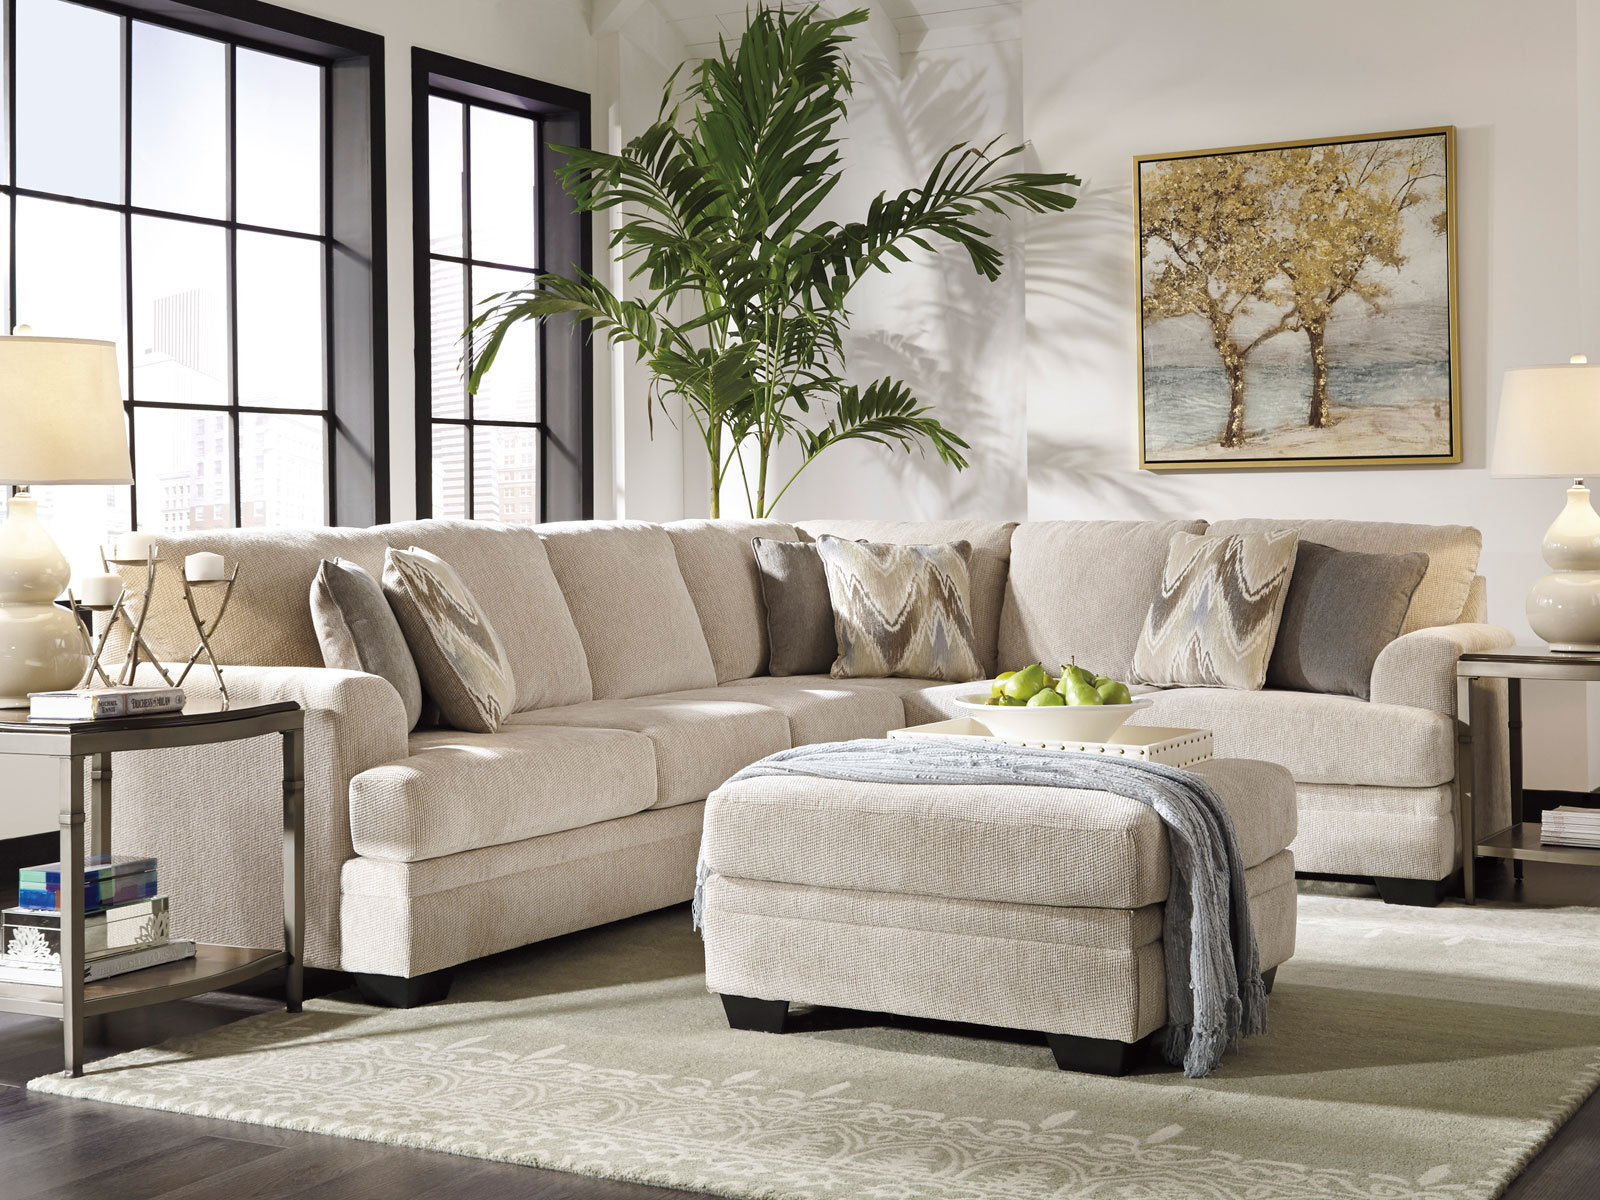 Balboa new large modern gray microfiber living room sofa for Large couch small living room